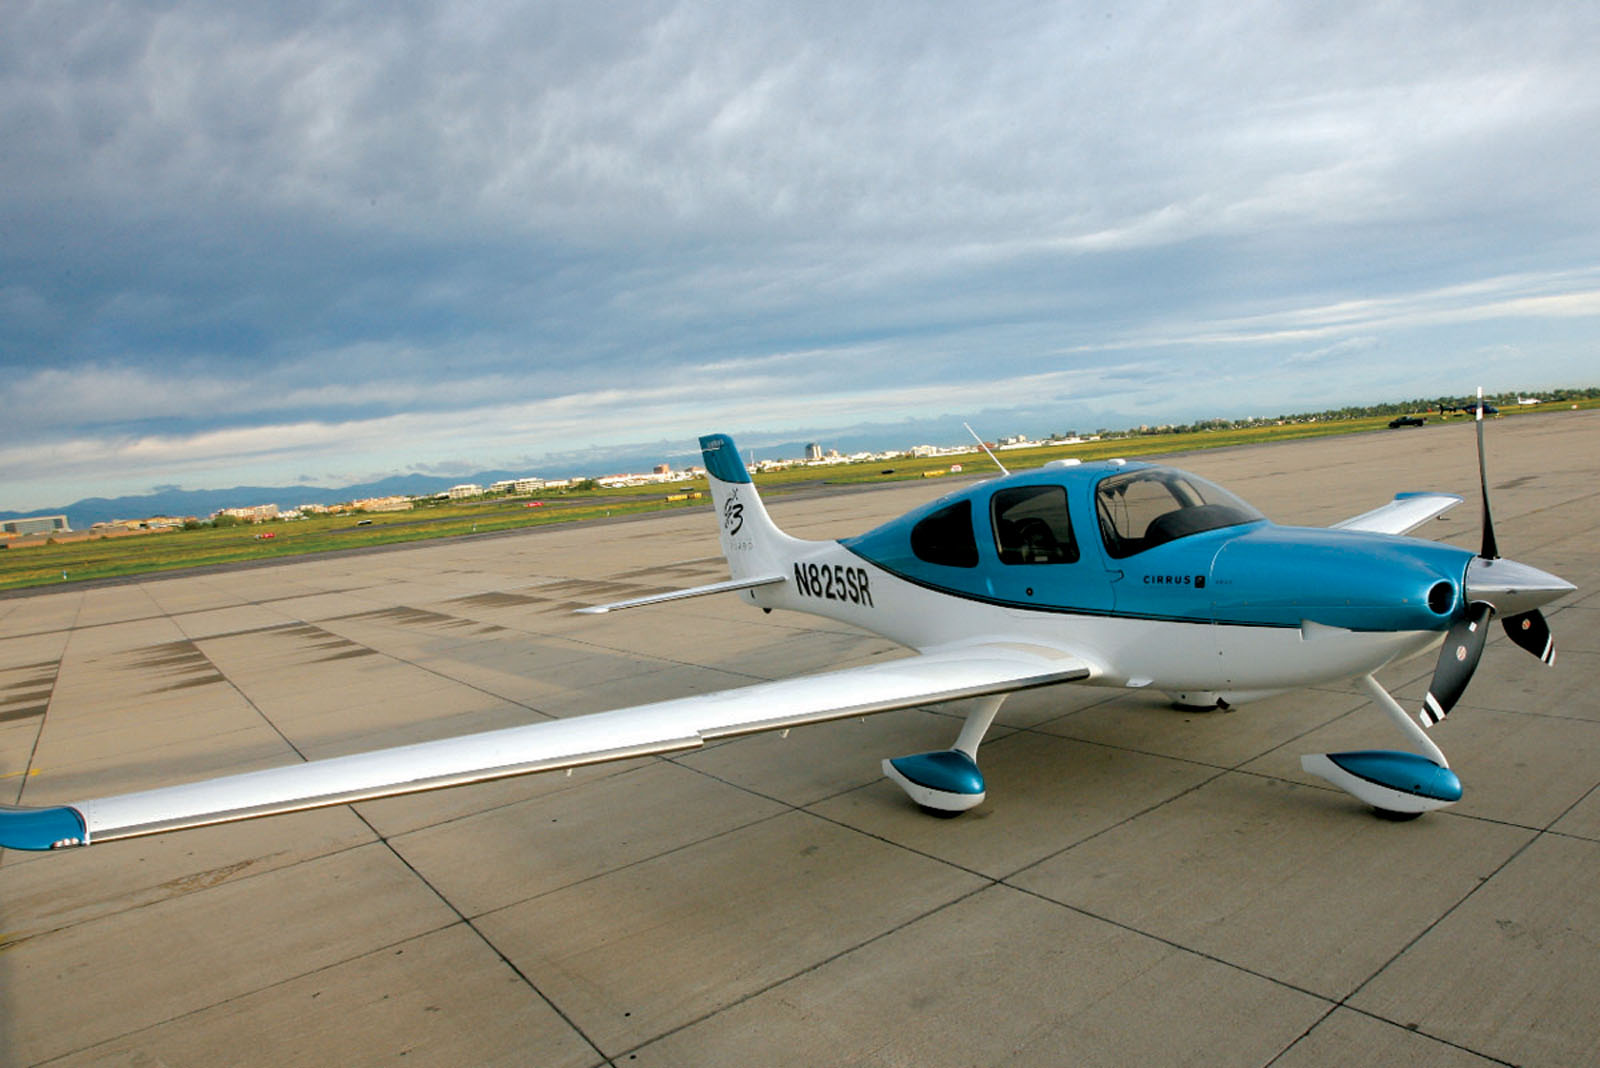 Sky Shares Demonstrates its Cirrus SR22-G3